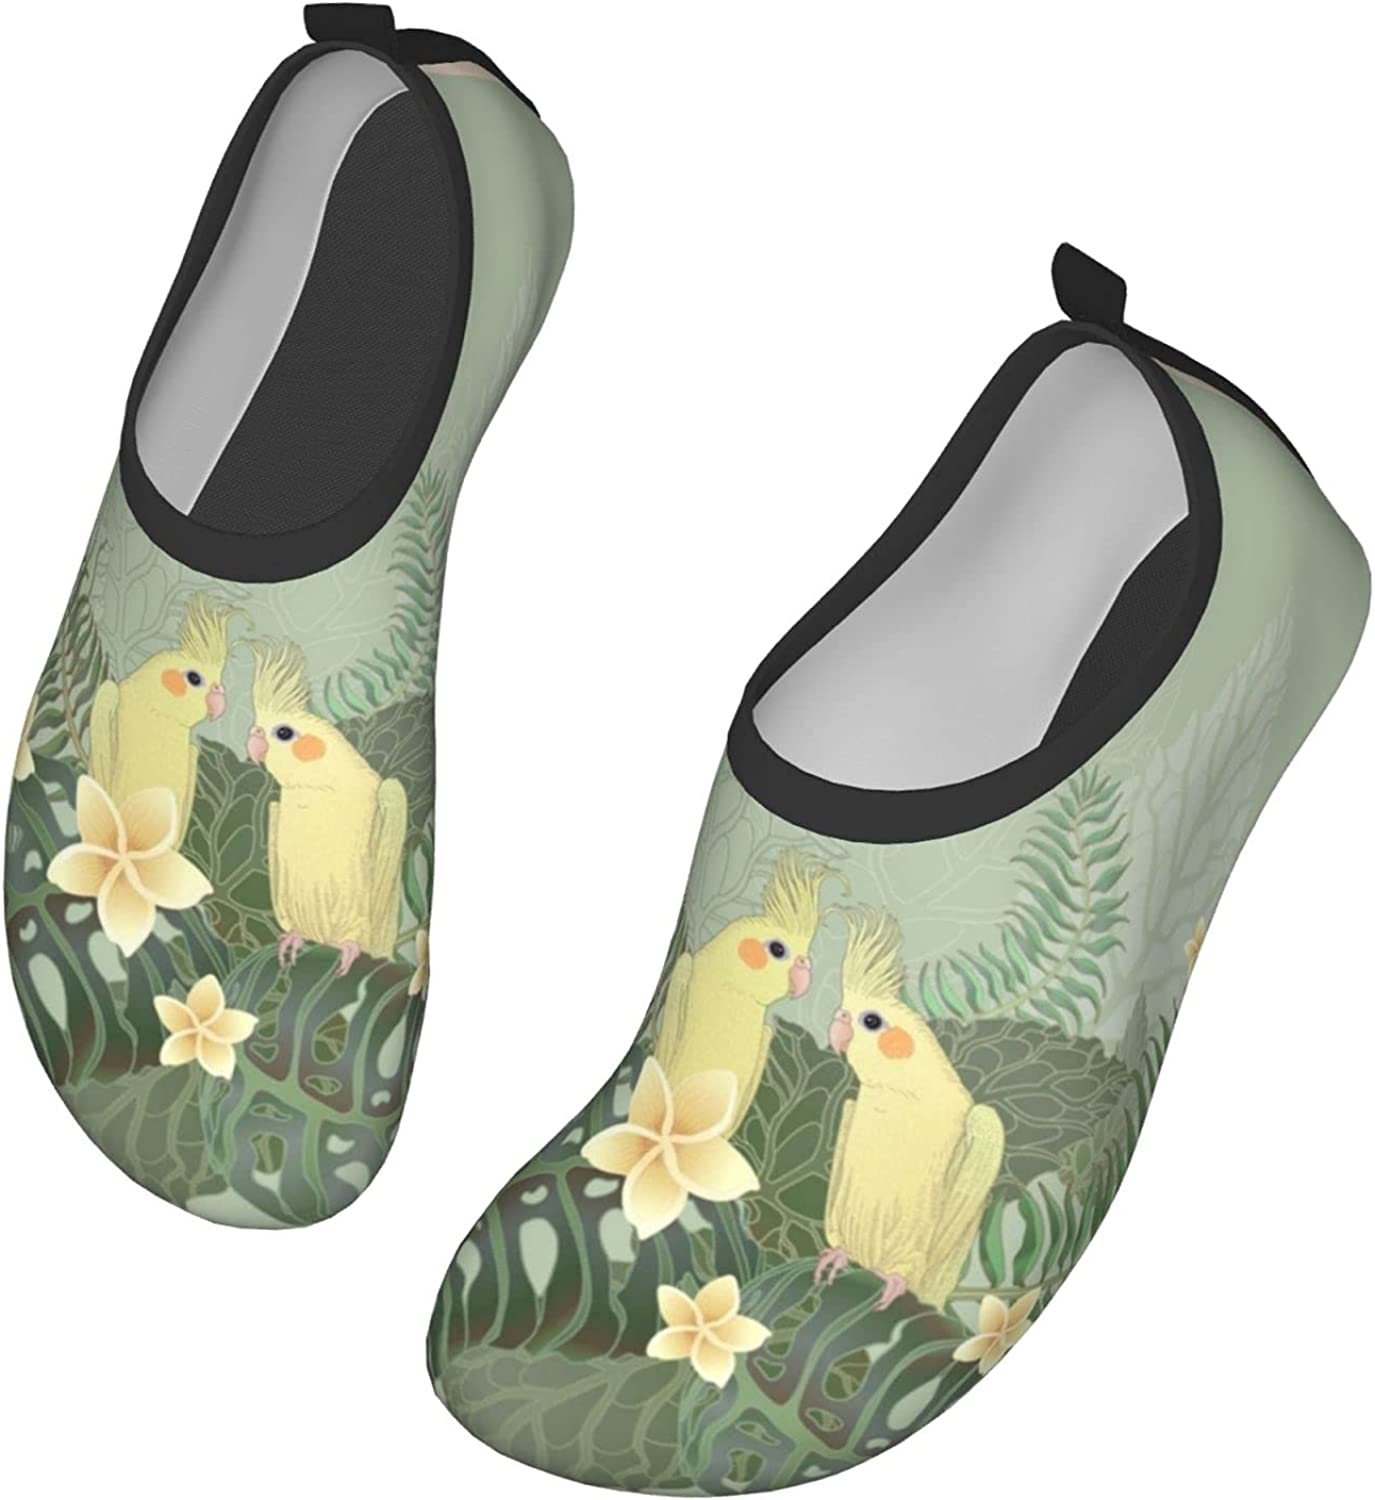 Two Yellow Cockatiel Parrots Water Shoes for Womens and Mens Summer Barefoot Shoes Quick Dry Aqua Socks for Beach Swim Yoga Exercise